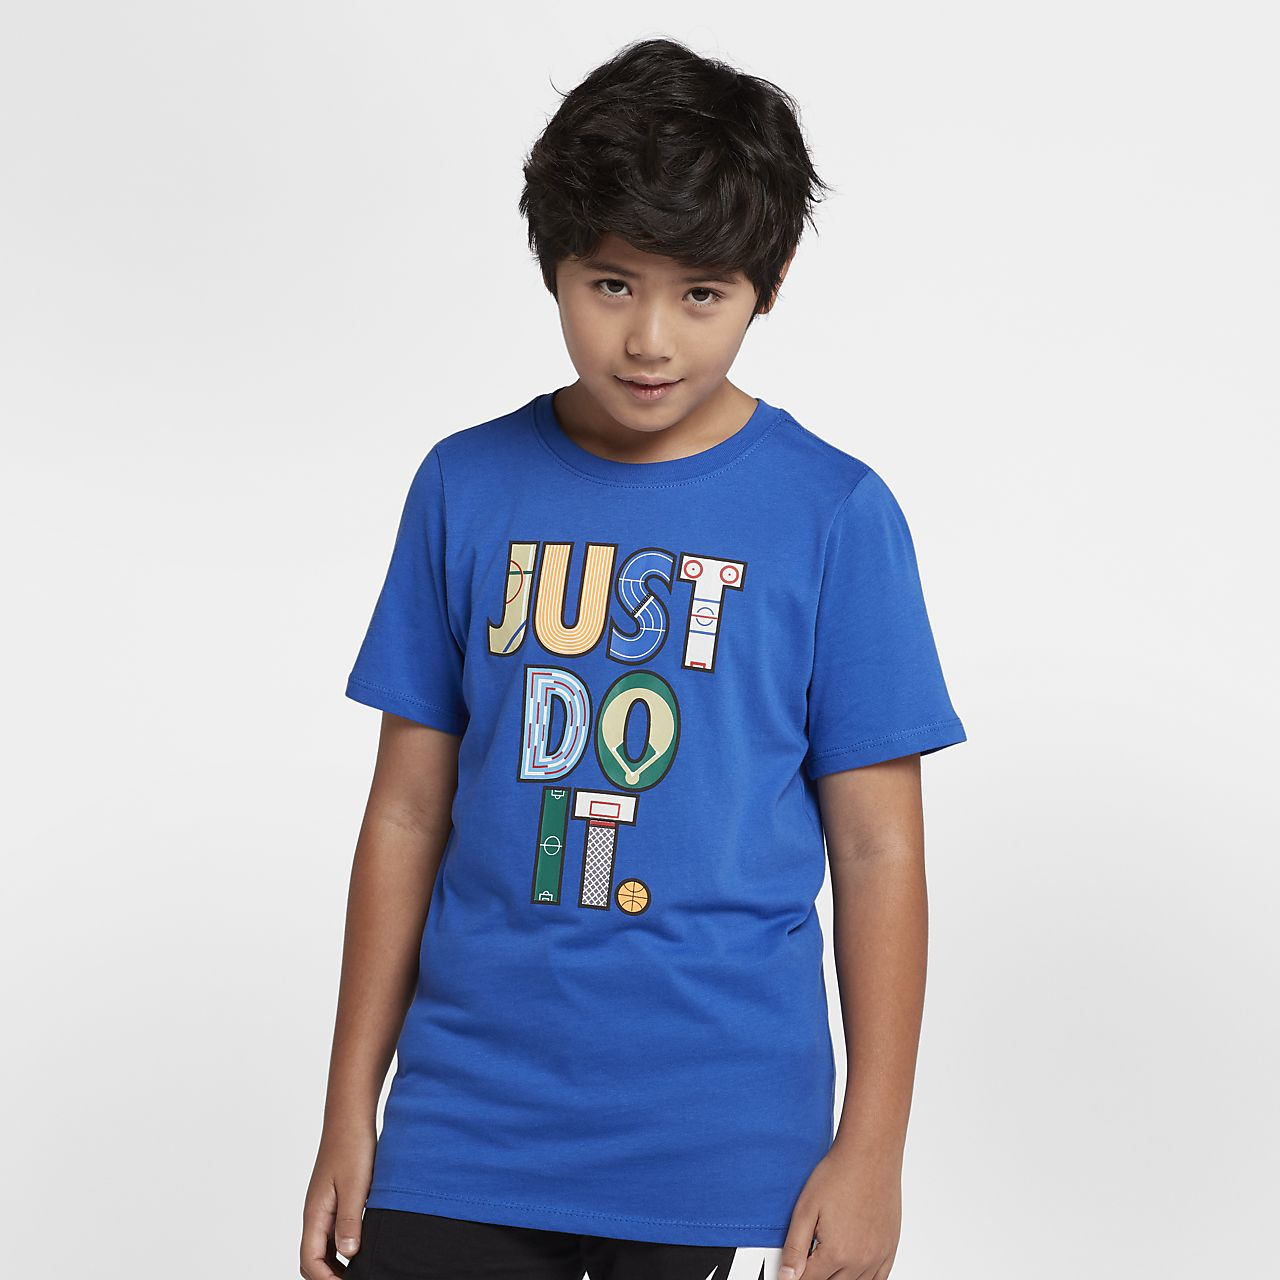 7350f3088661e Nike Sportswear Just Do It Older Kids  (Boys ) T-Shirt. Nike.com CA